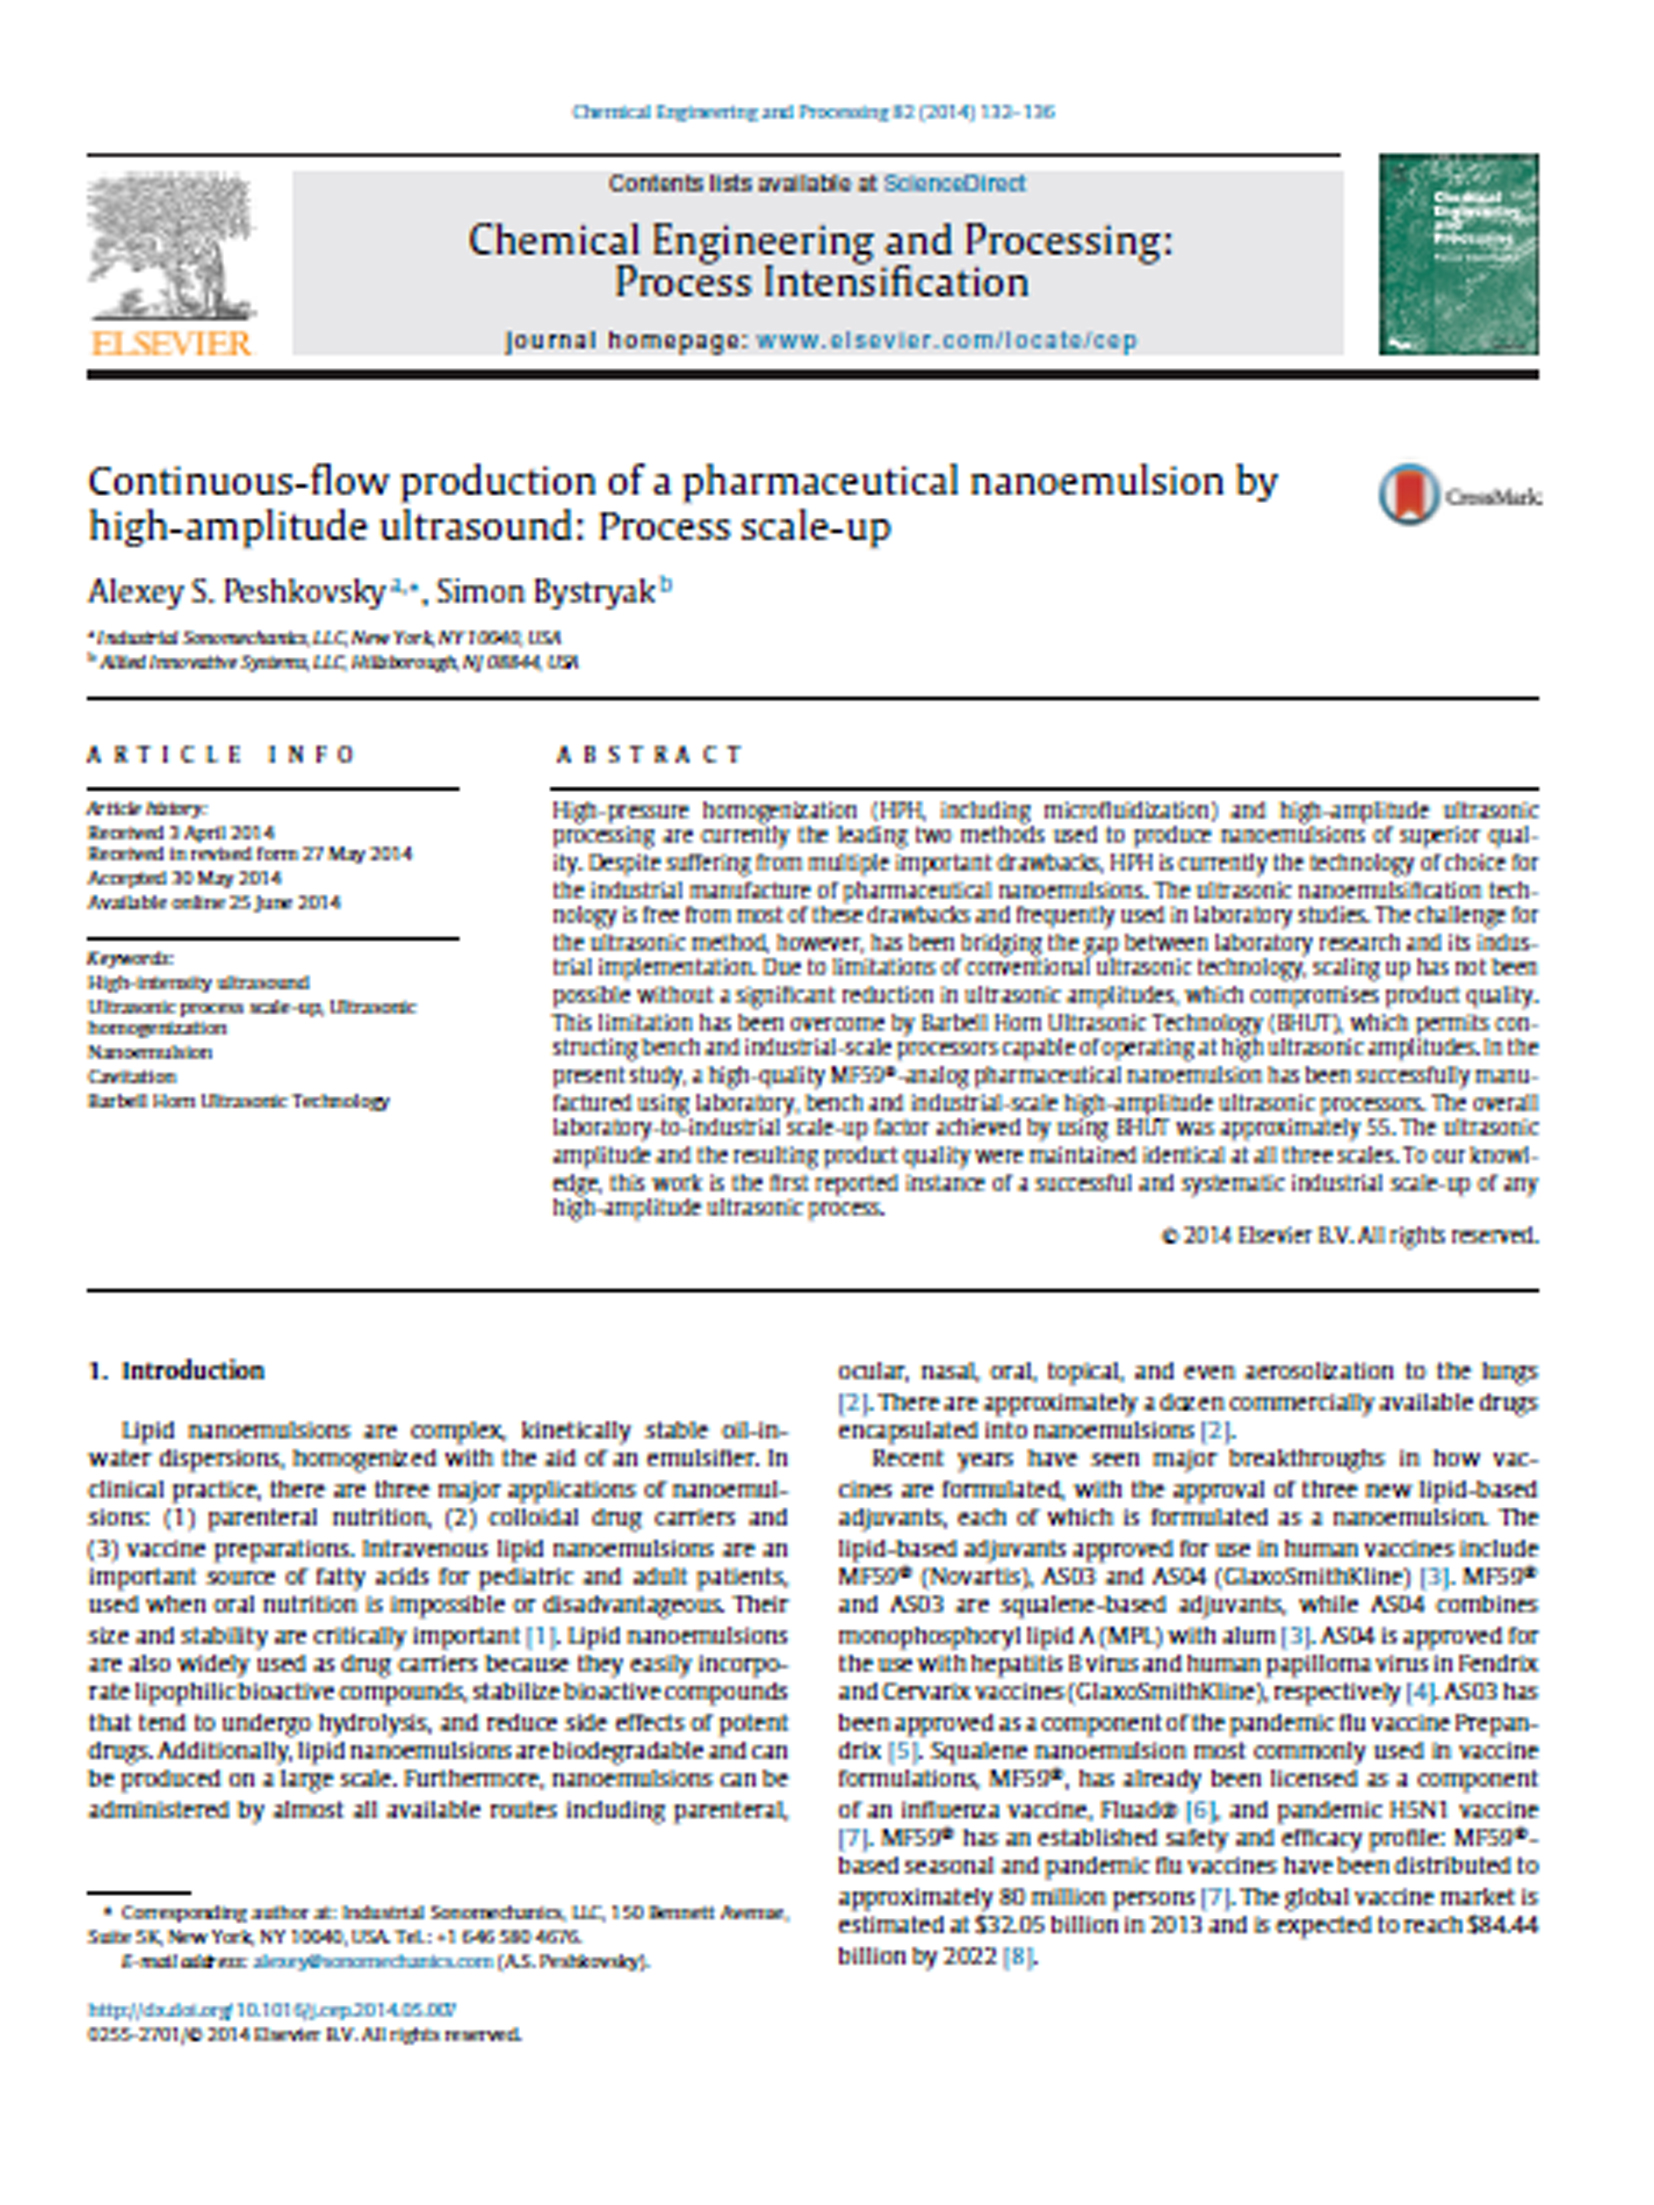 m_Continuous-Flow_Production_of_a_Pharmaceutical_Nanoemulsion_by_High-Amplitude_Ultrasound_-_Process_Scale-up